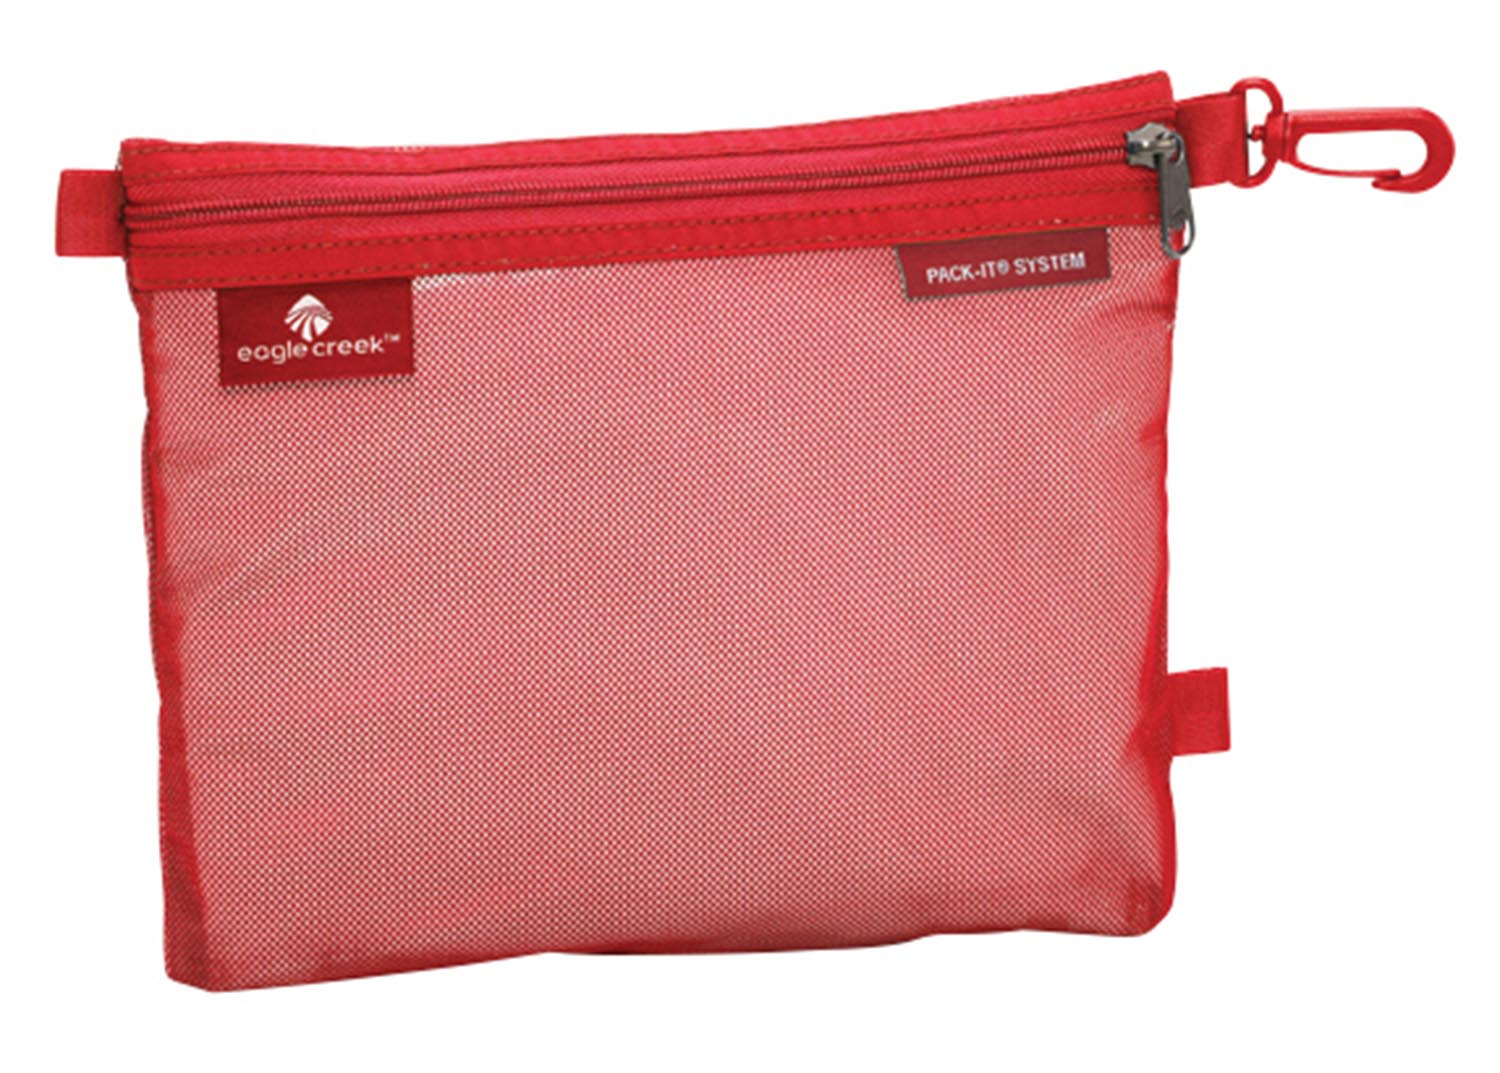 Pack-It Sac Medium Red Fire-30